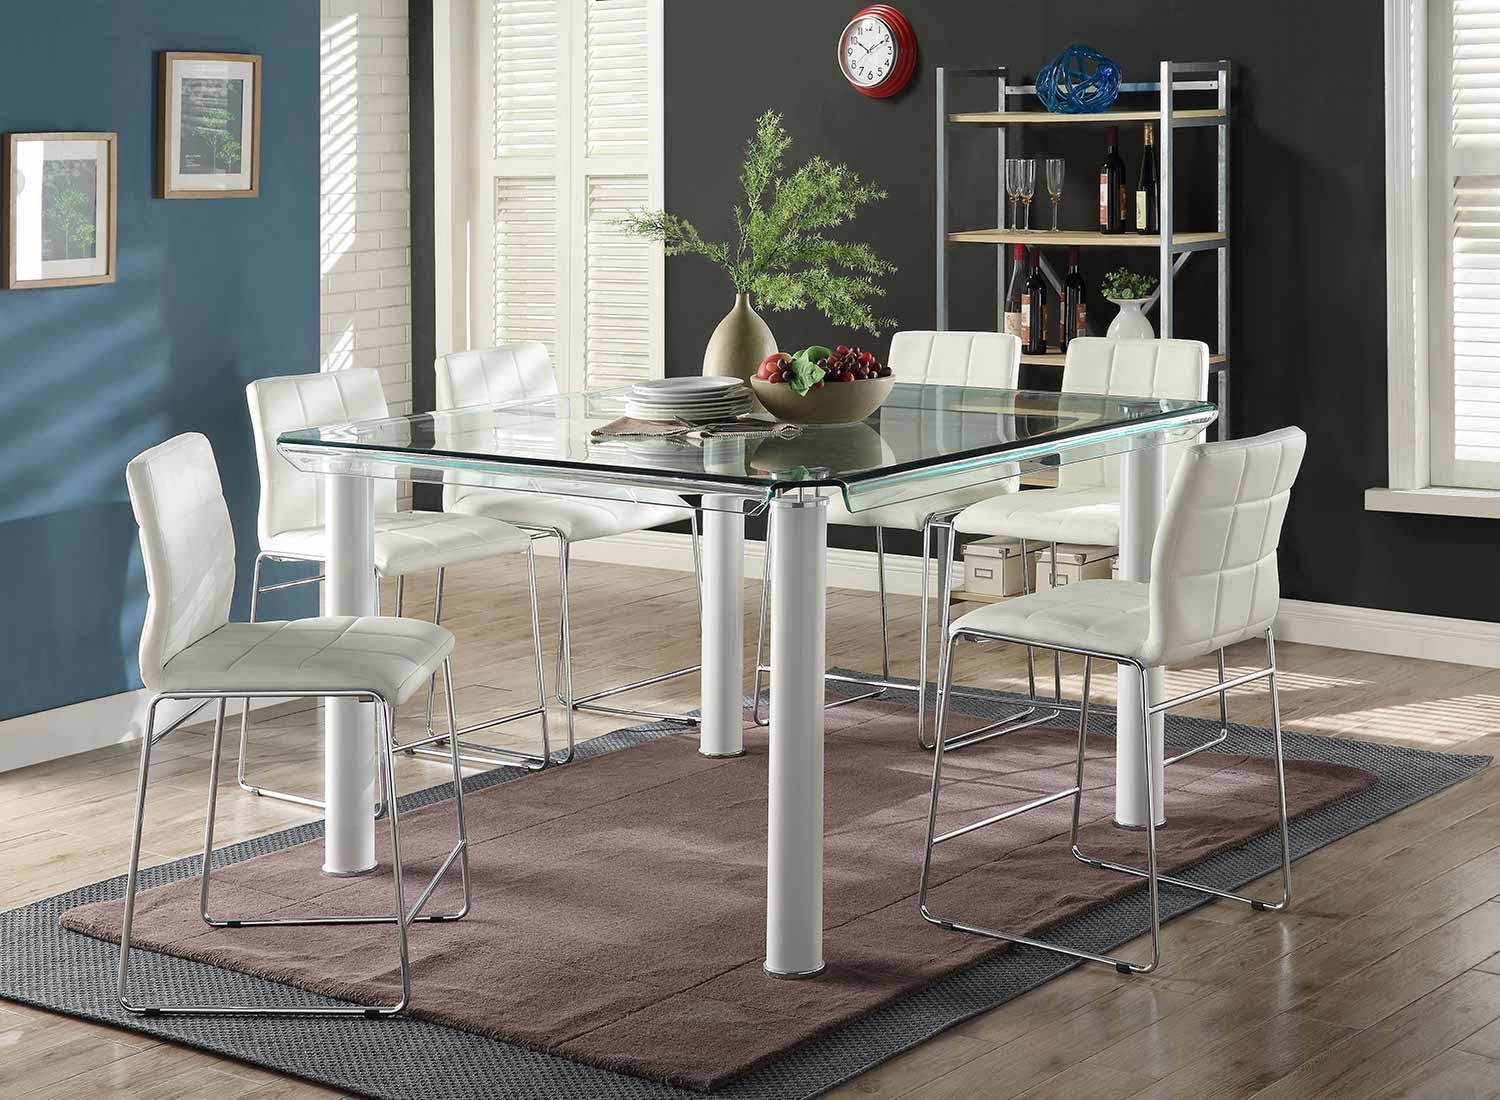 Acme Gordie Sled Metal Shape Counter Height Dining Set - White/Clear Glass/Chrome